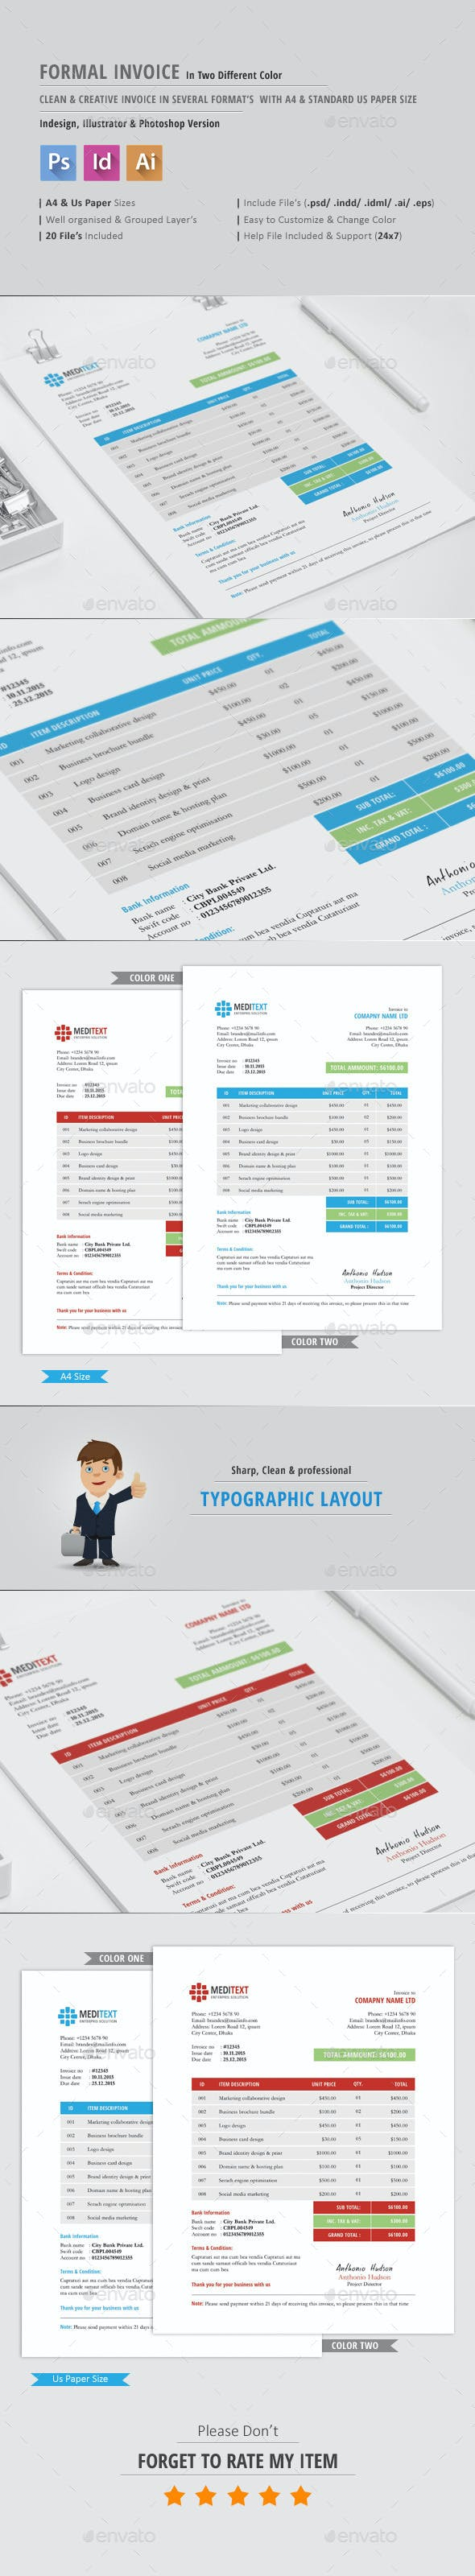 formal invoice template proposals invoices stationery